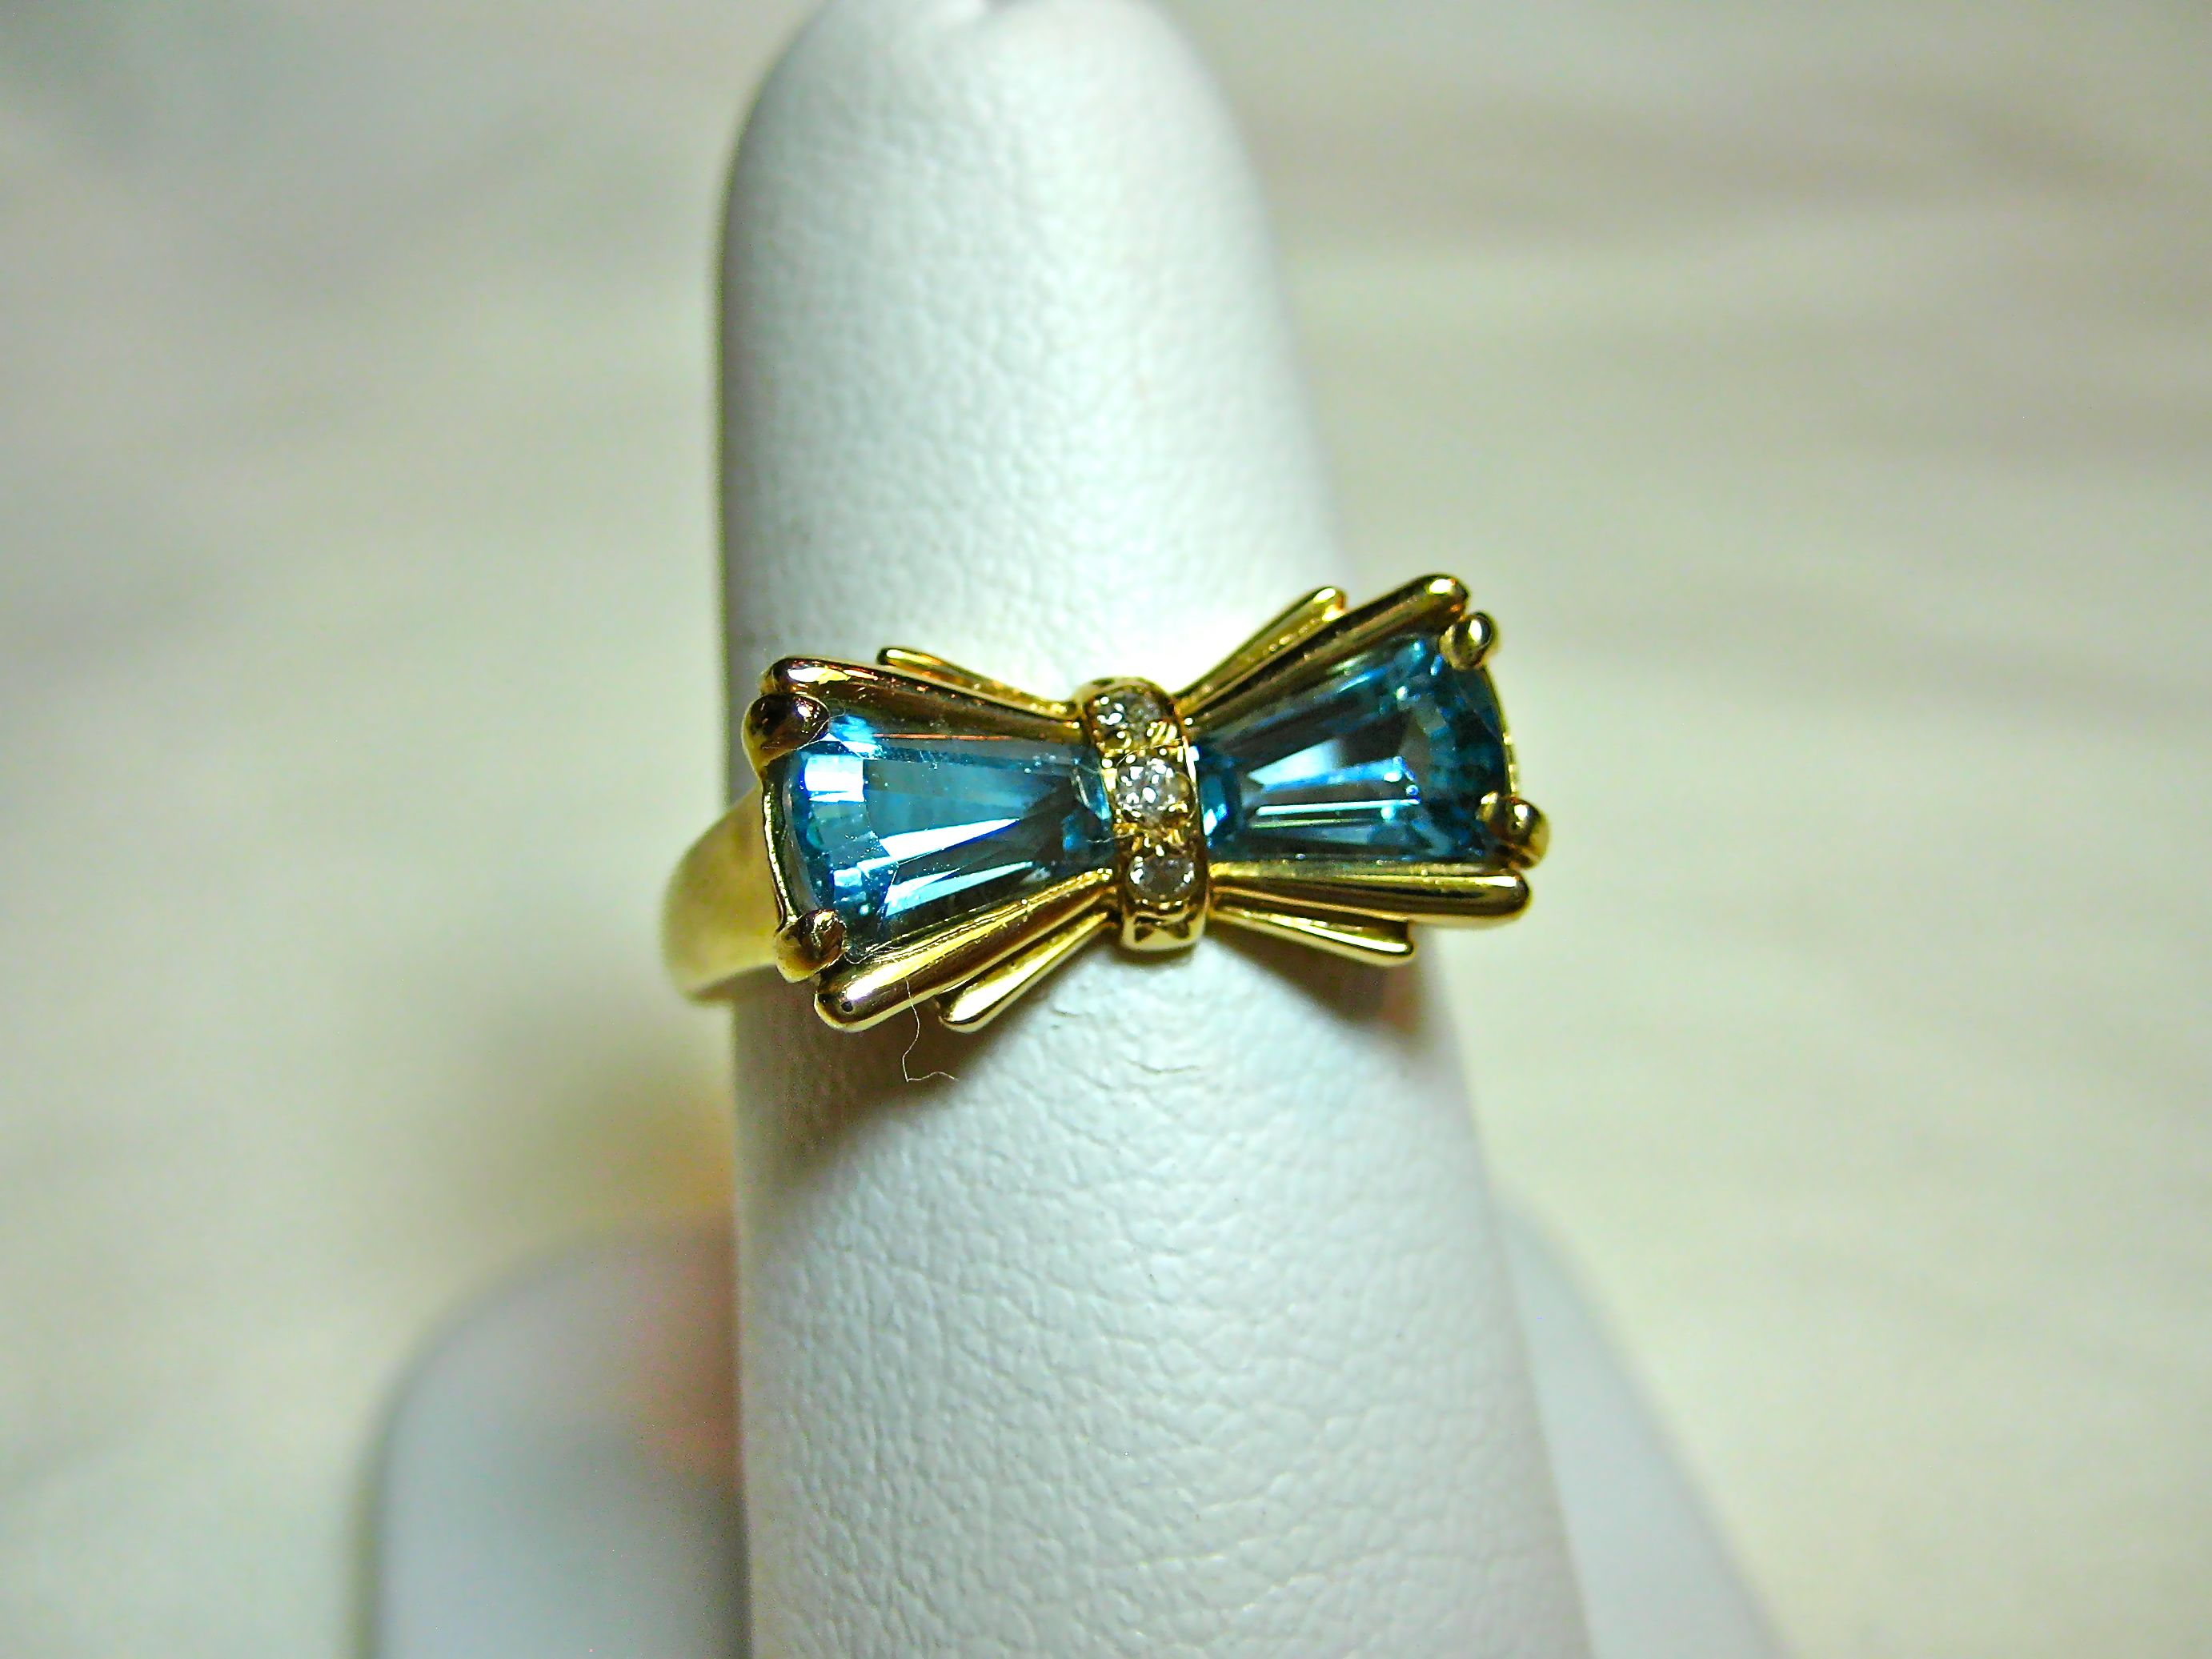 beautiful bow ring!